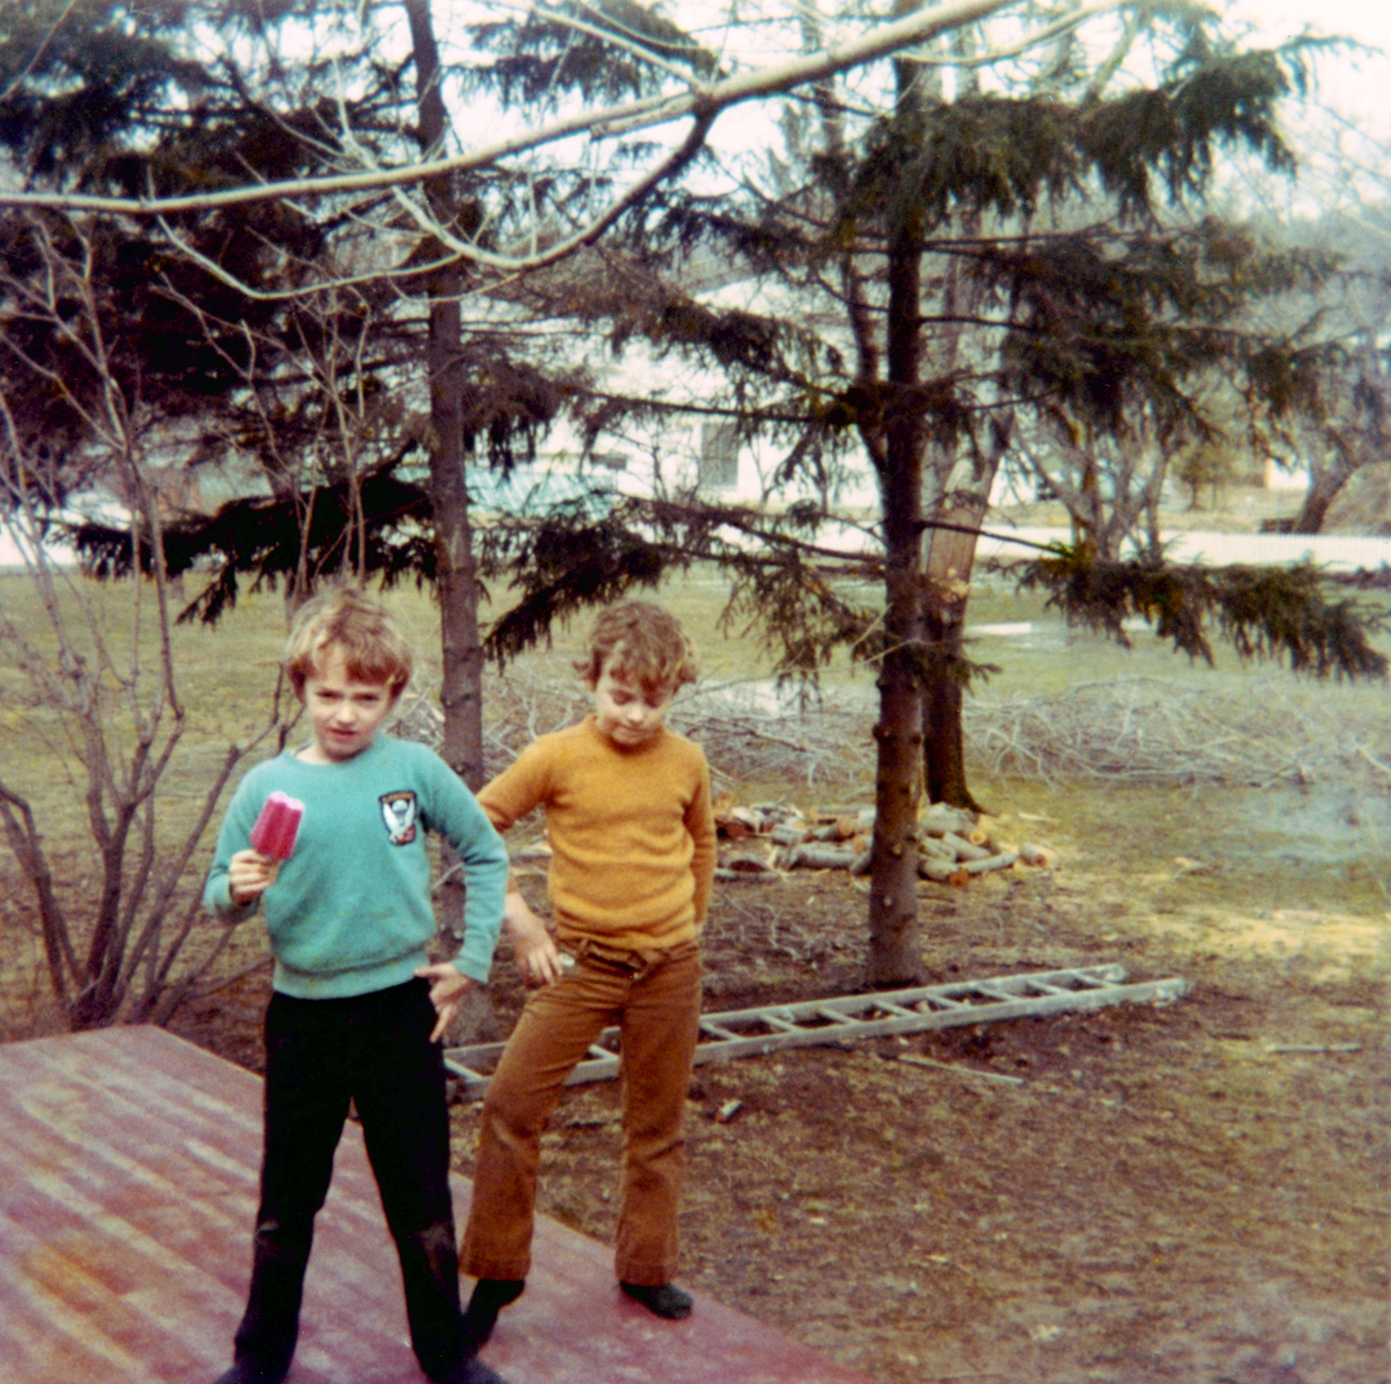 At age 8, Mark, left, and Scott at home in West Orange, N.J in April 1972.